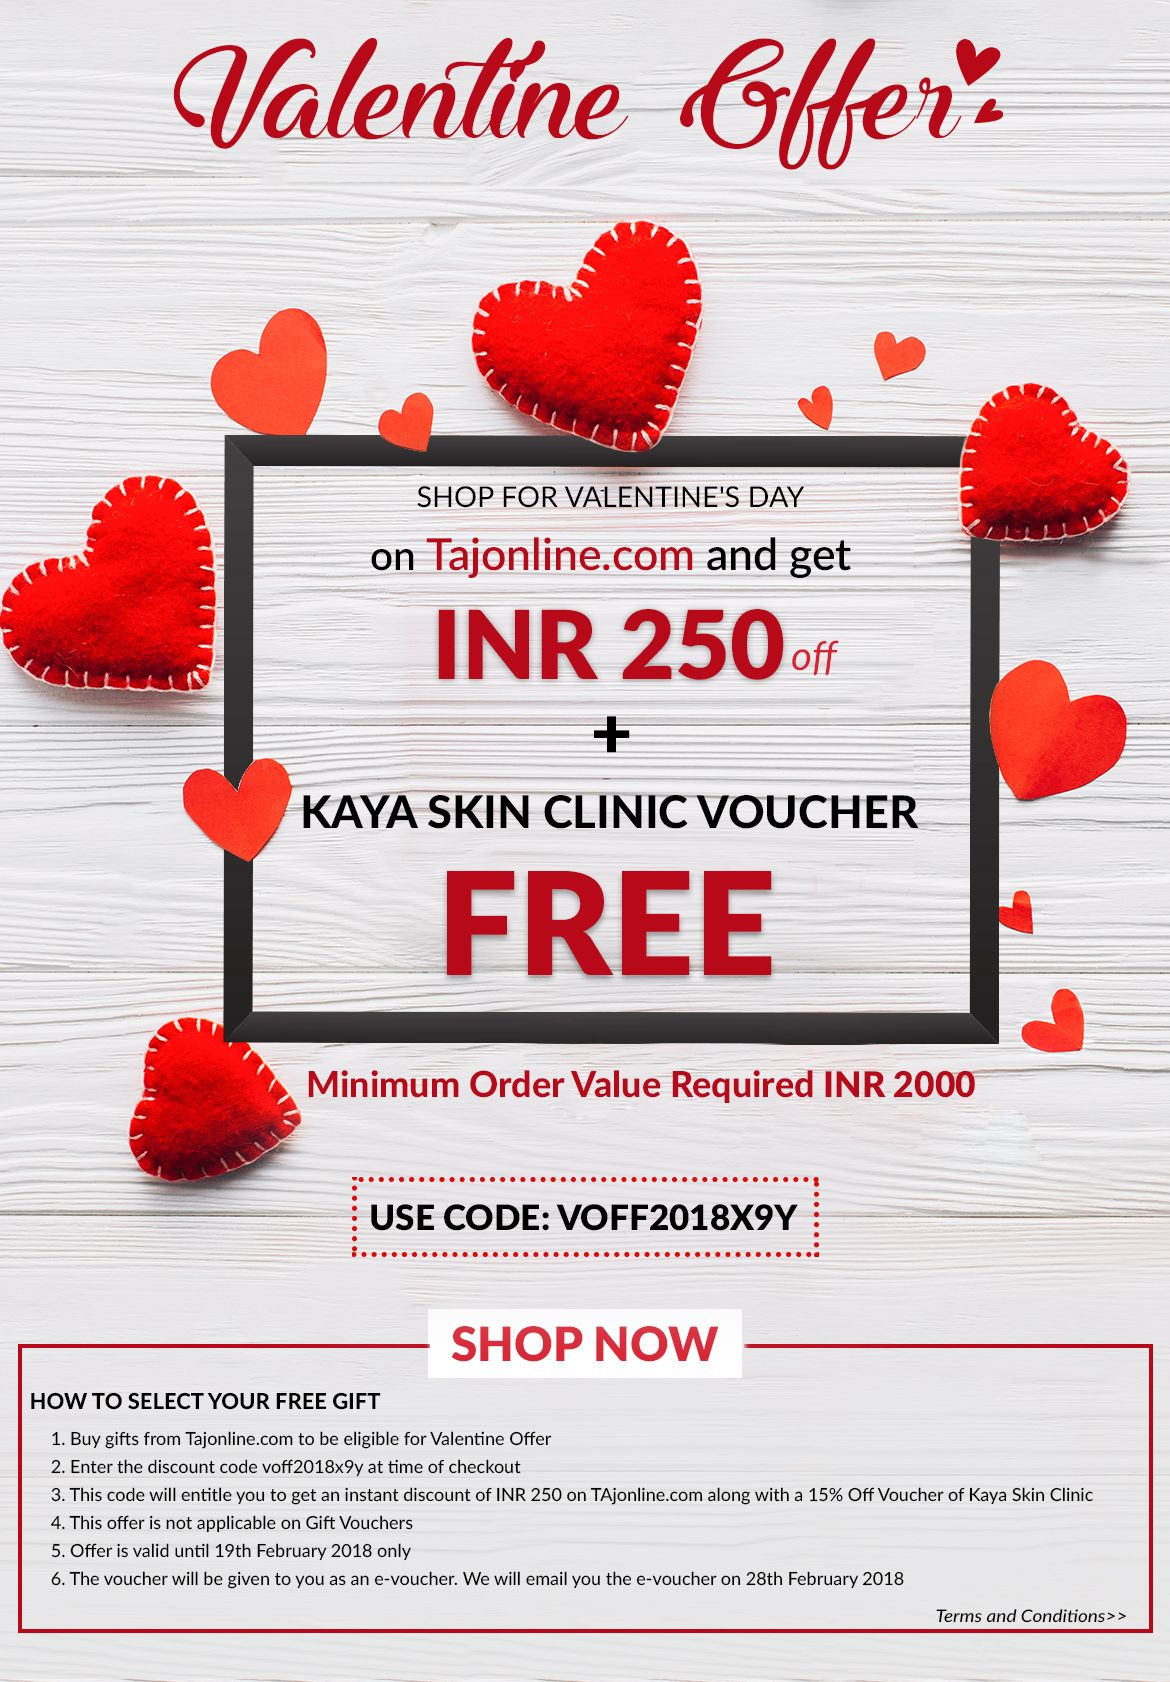 Tajonline Is One Of The Best Online Site For Special Valentine Gifts For Men And Women Special Valentines Gift Mens Valentines Gifts Best Valentine S Day Gifts